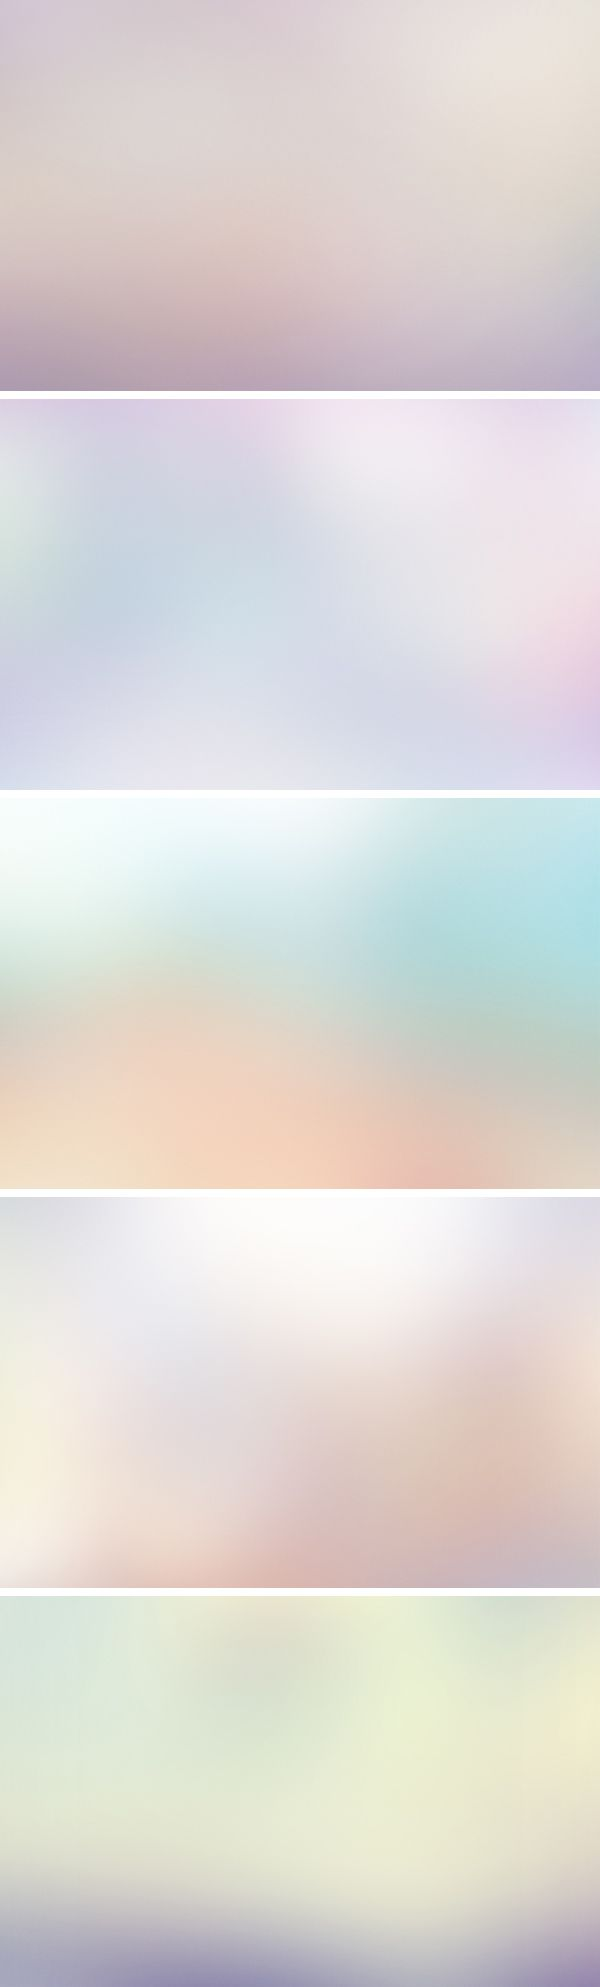 Free - 5 Blurred Backgrounds Vol.2